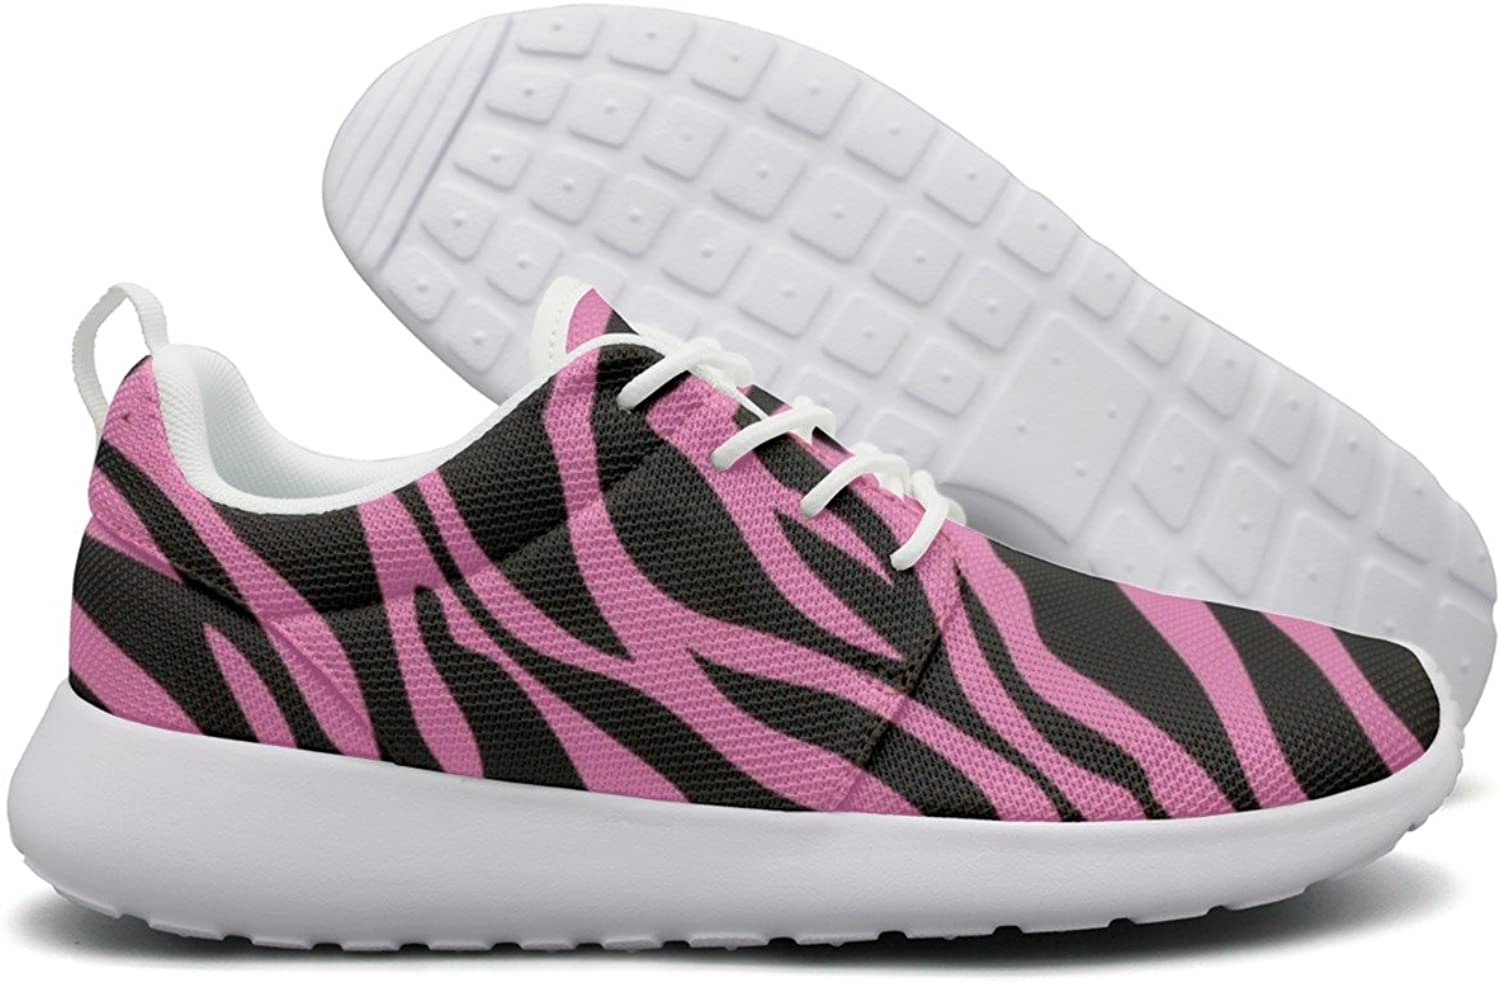 ERSER Pink Rainbow Zebra Stripe Cushioned Running shoes Women